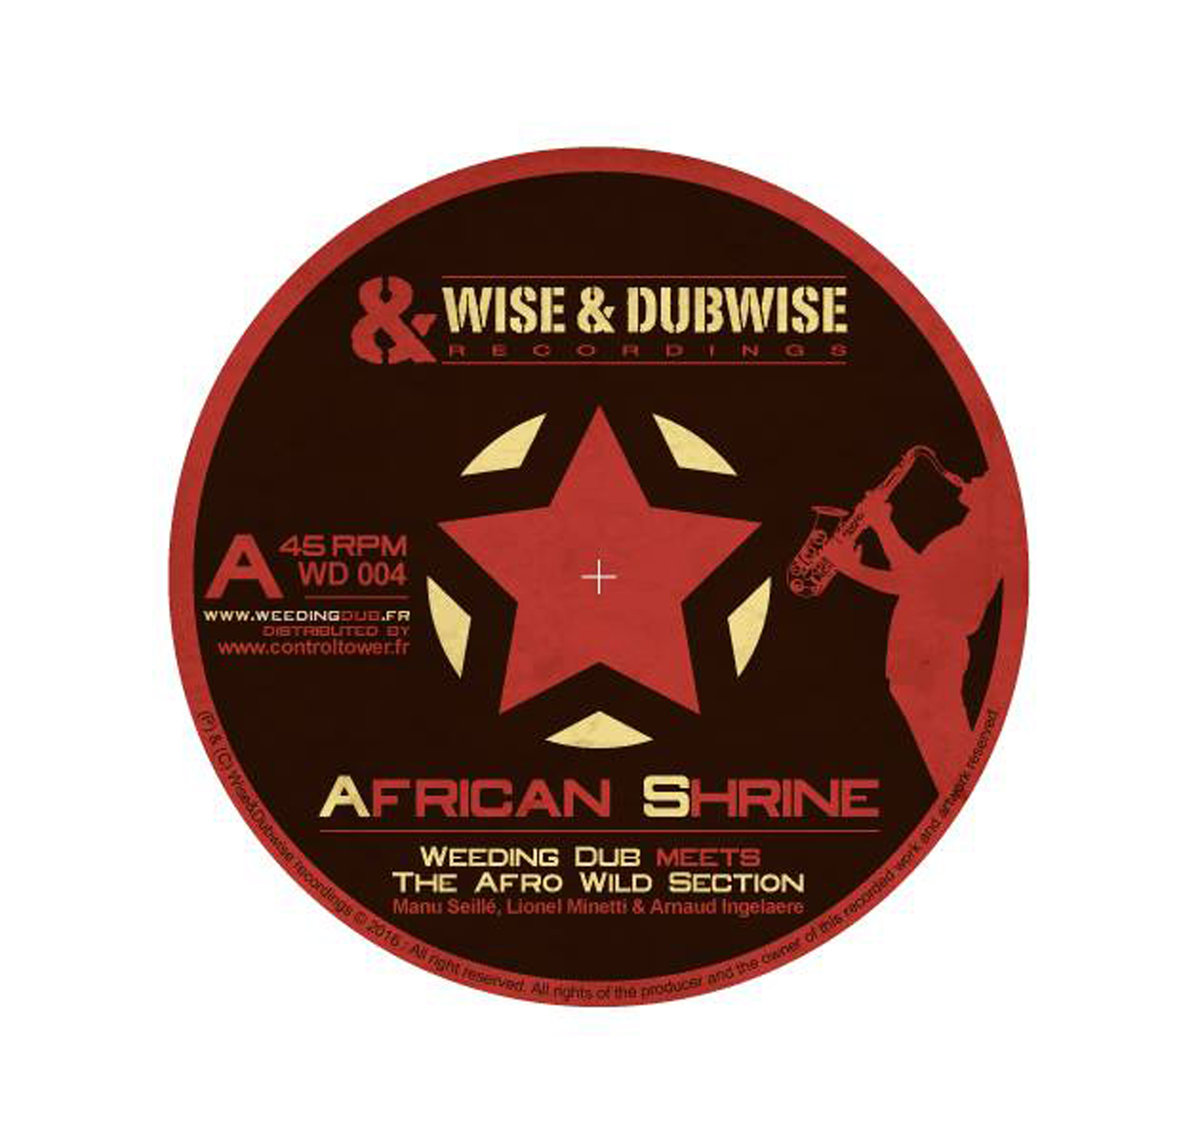 Weeding Dub Meets The Afro Wild Section – African Shrine